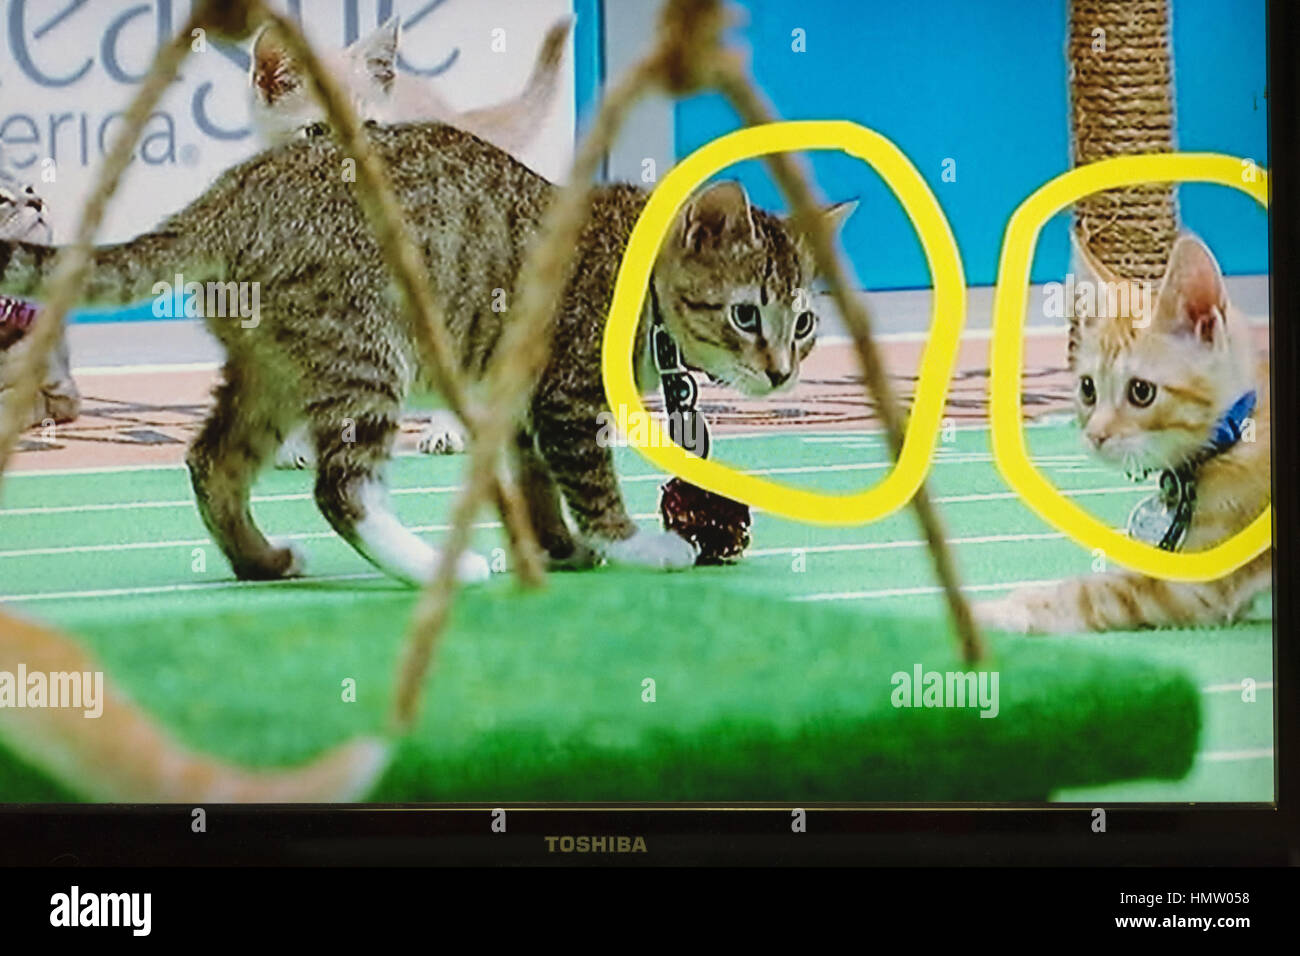 Wantagh, USA. 5th Feb, 2017. During Hallmark Channel's Kitten Bowl IV television show, with two kitten players - Stock Image